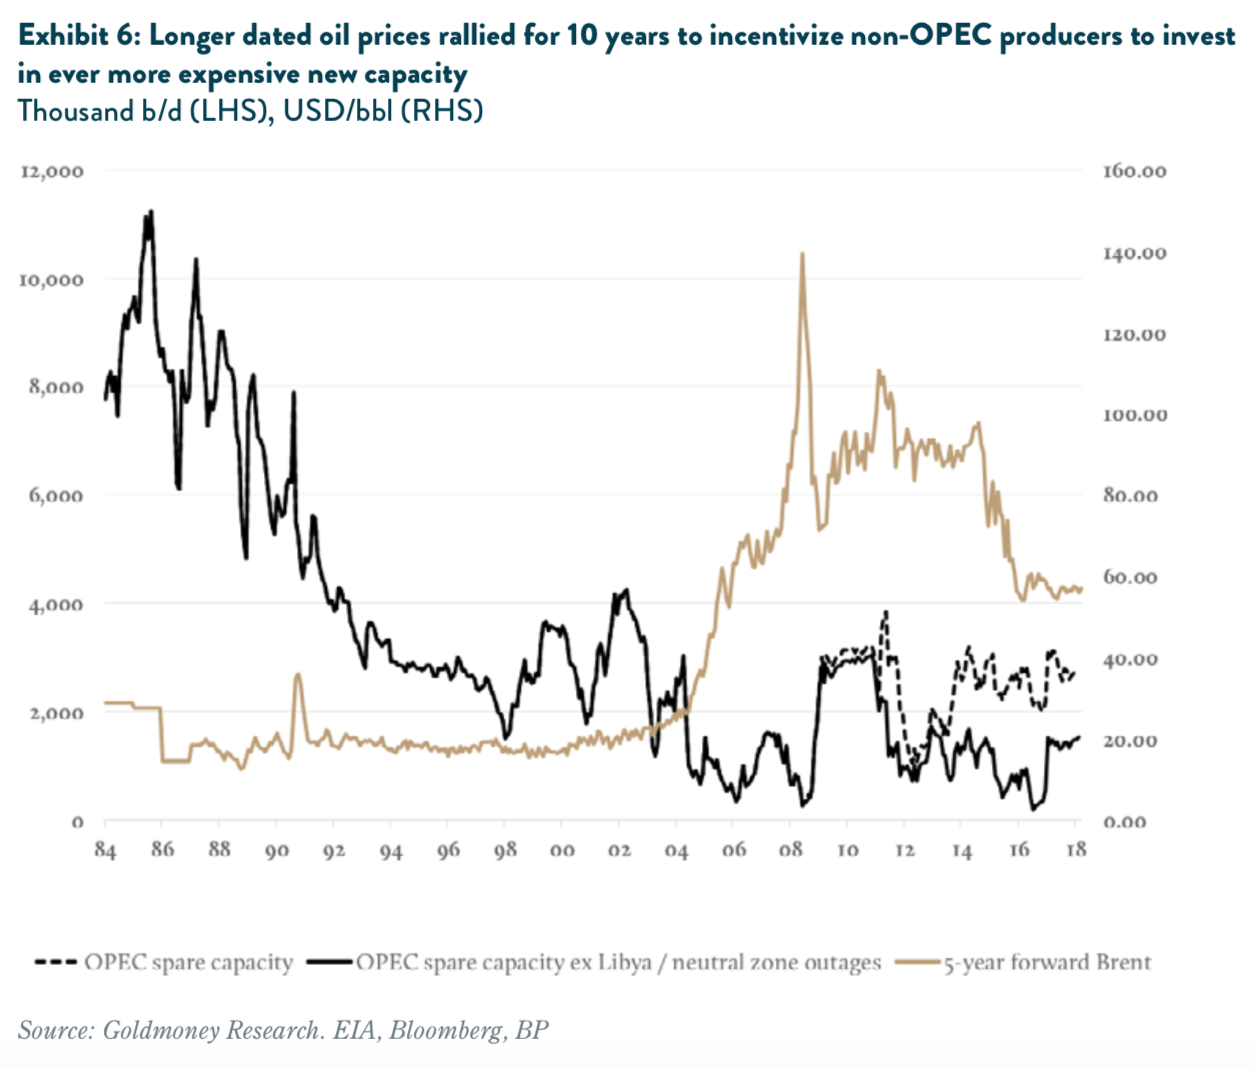 Longer dated oil prices rallied for 10 years to incentivize non-OPEC producers